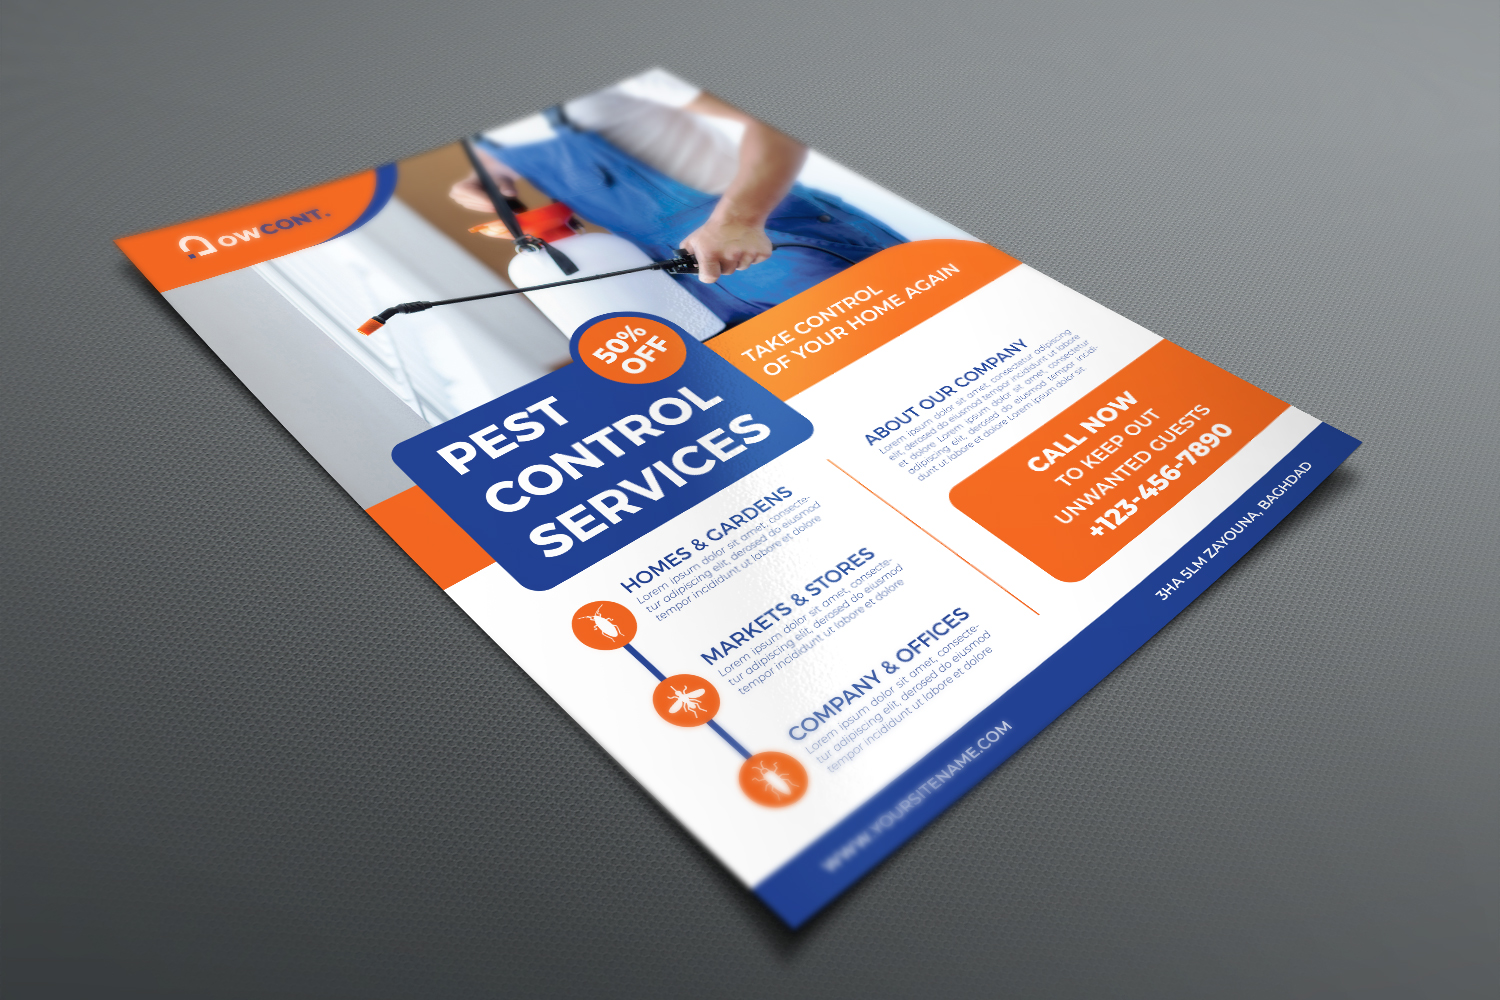 Pest Control Services Flyer Template example image 3